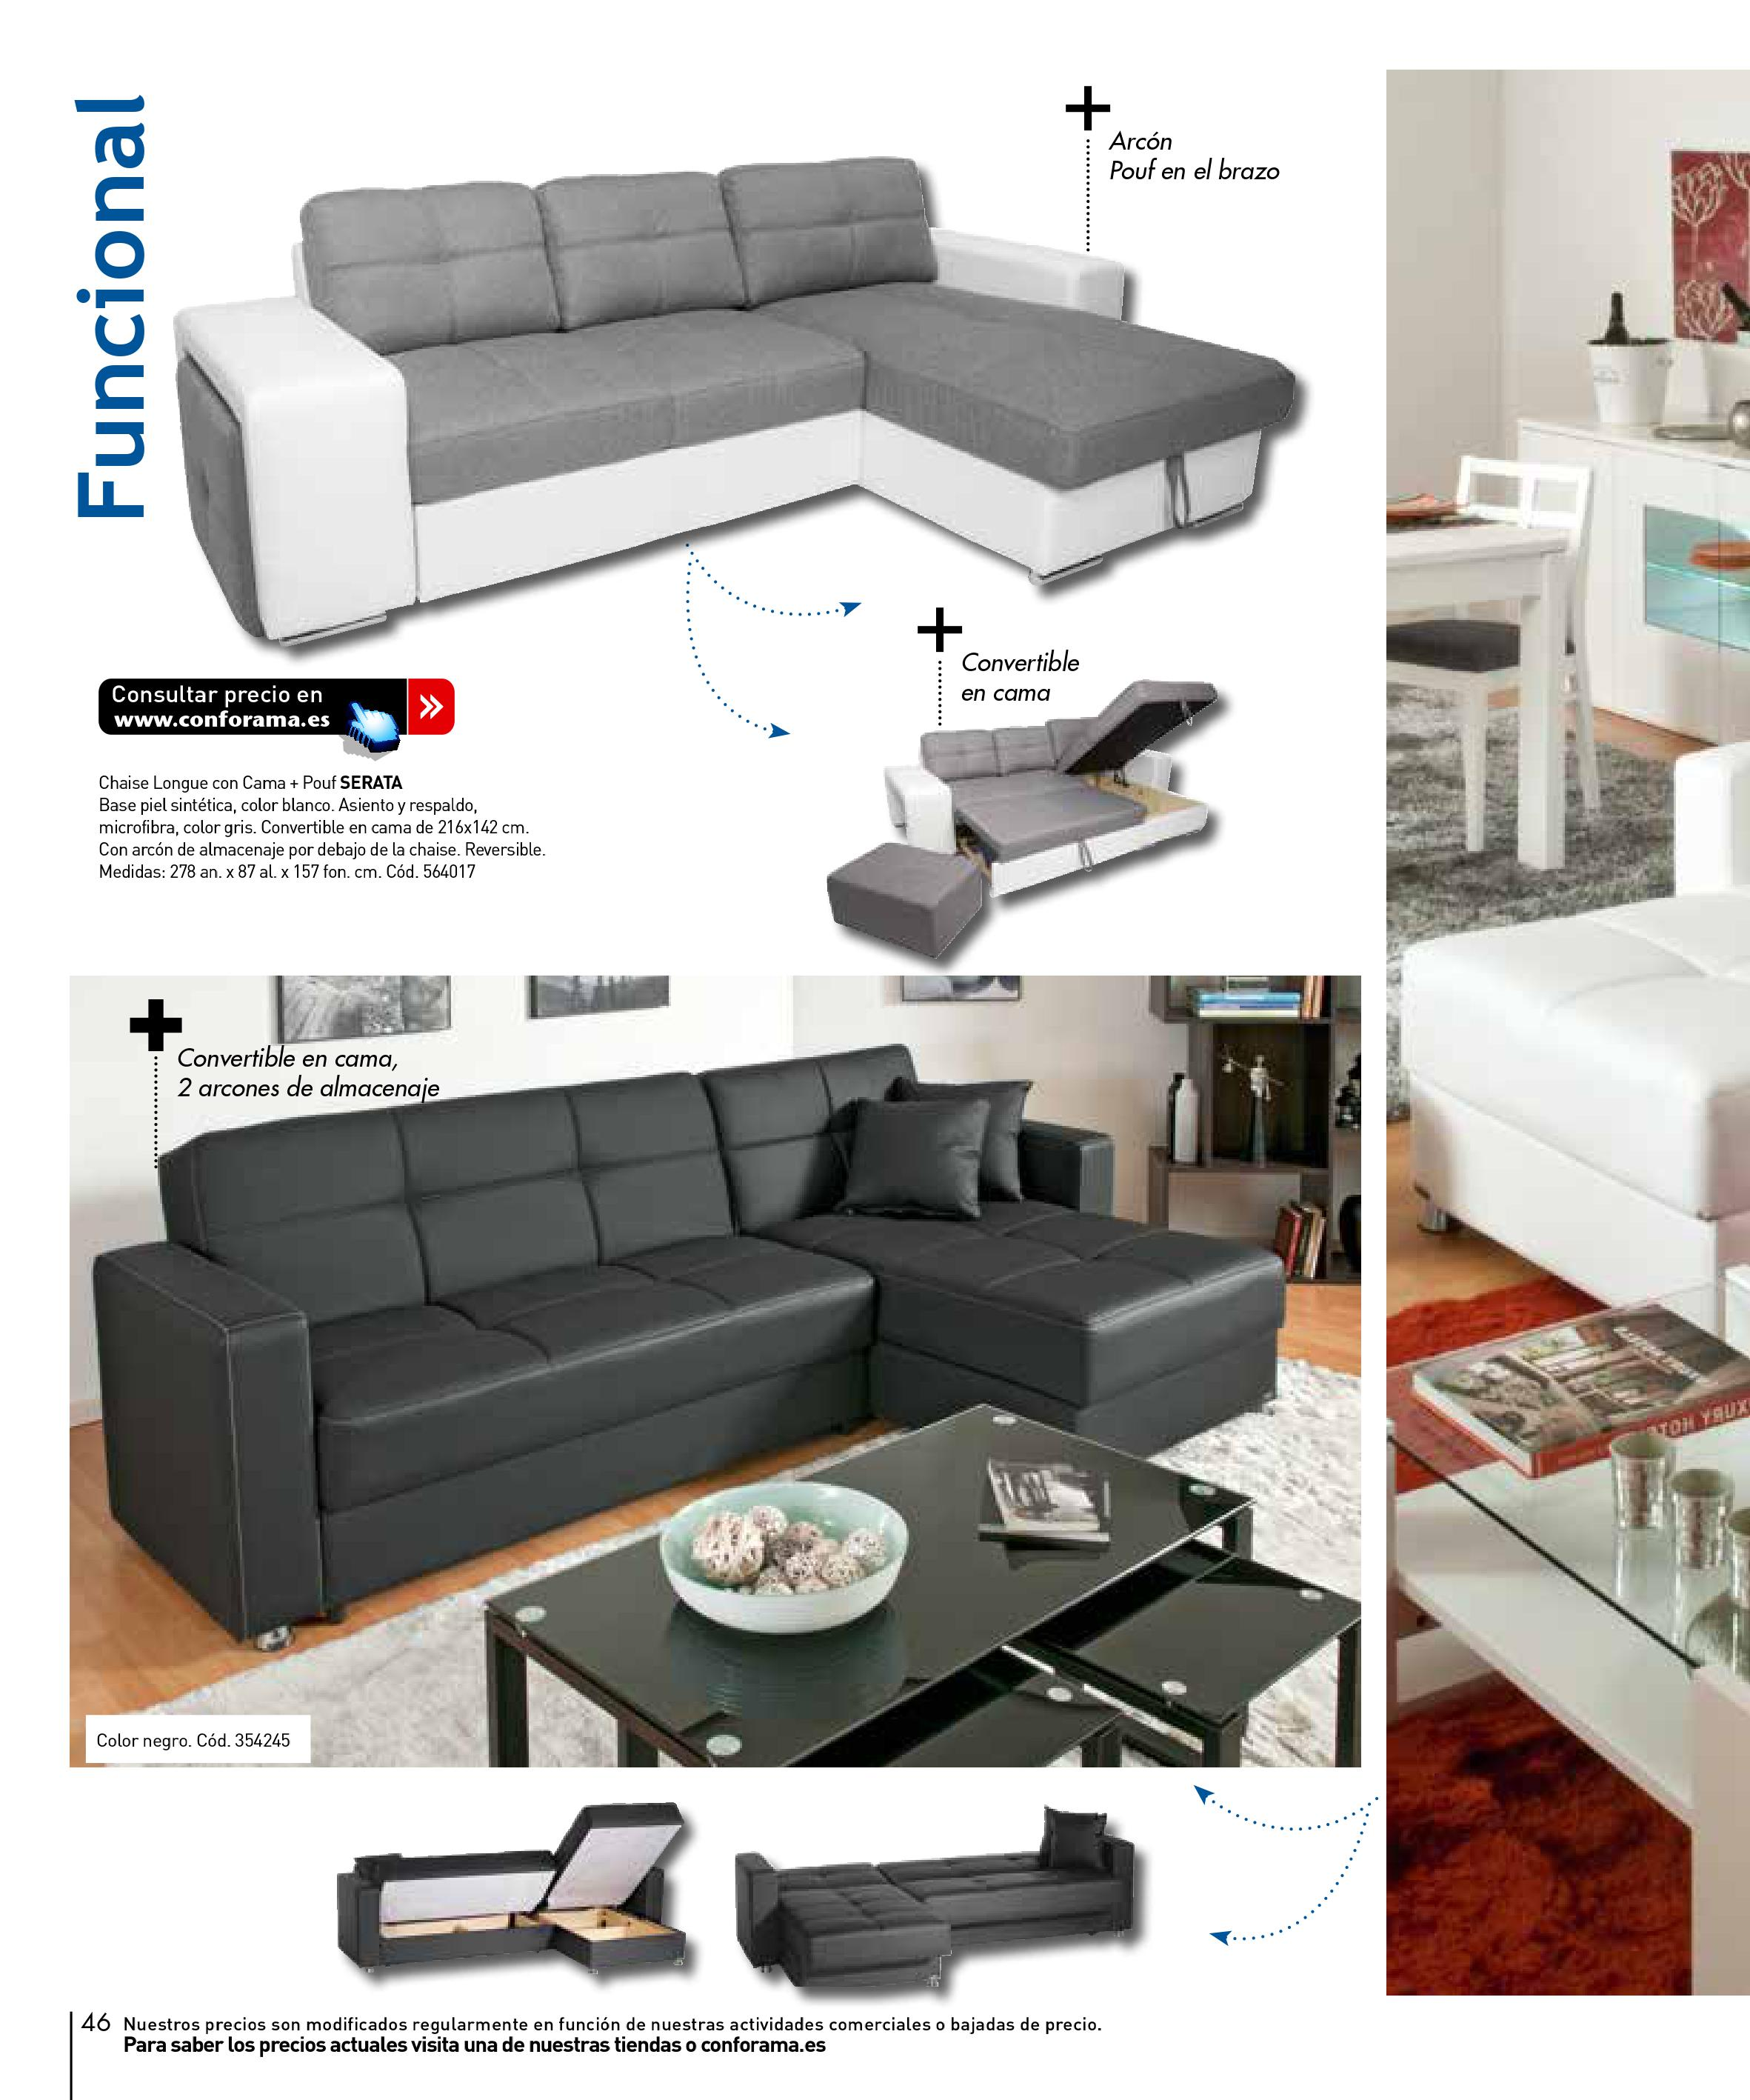 Sofas conforama 201546 for Sofas conforama catalogo